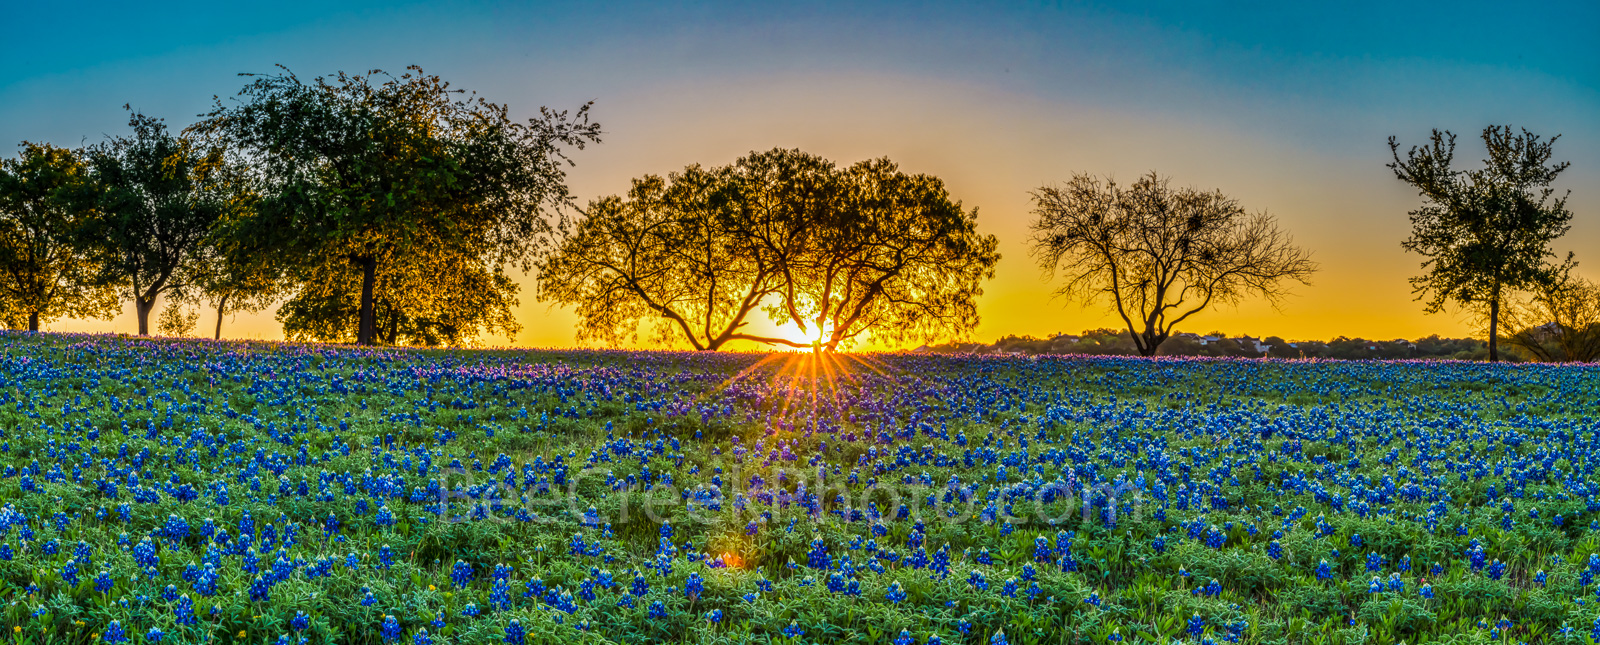 Bluebonnets, sunrise, field of bluebonnets, bluebonnets, wildflowers, pano, panorama, mesquite tree, Texas bluebonnet, landscape, bluebonnet landscape, Texas hill country, Lady Bird johnson, Highway b, photo